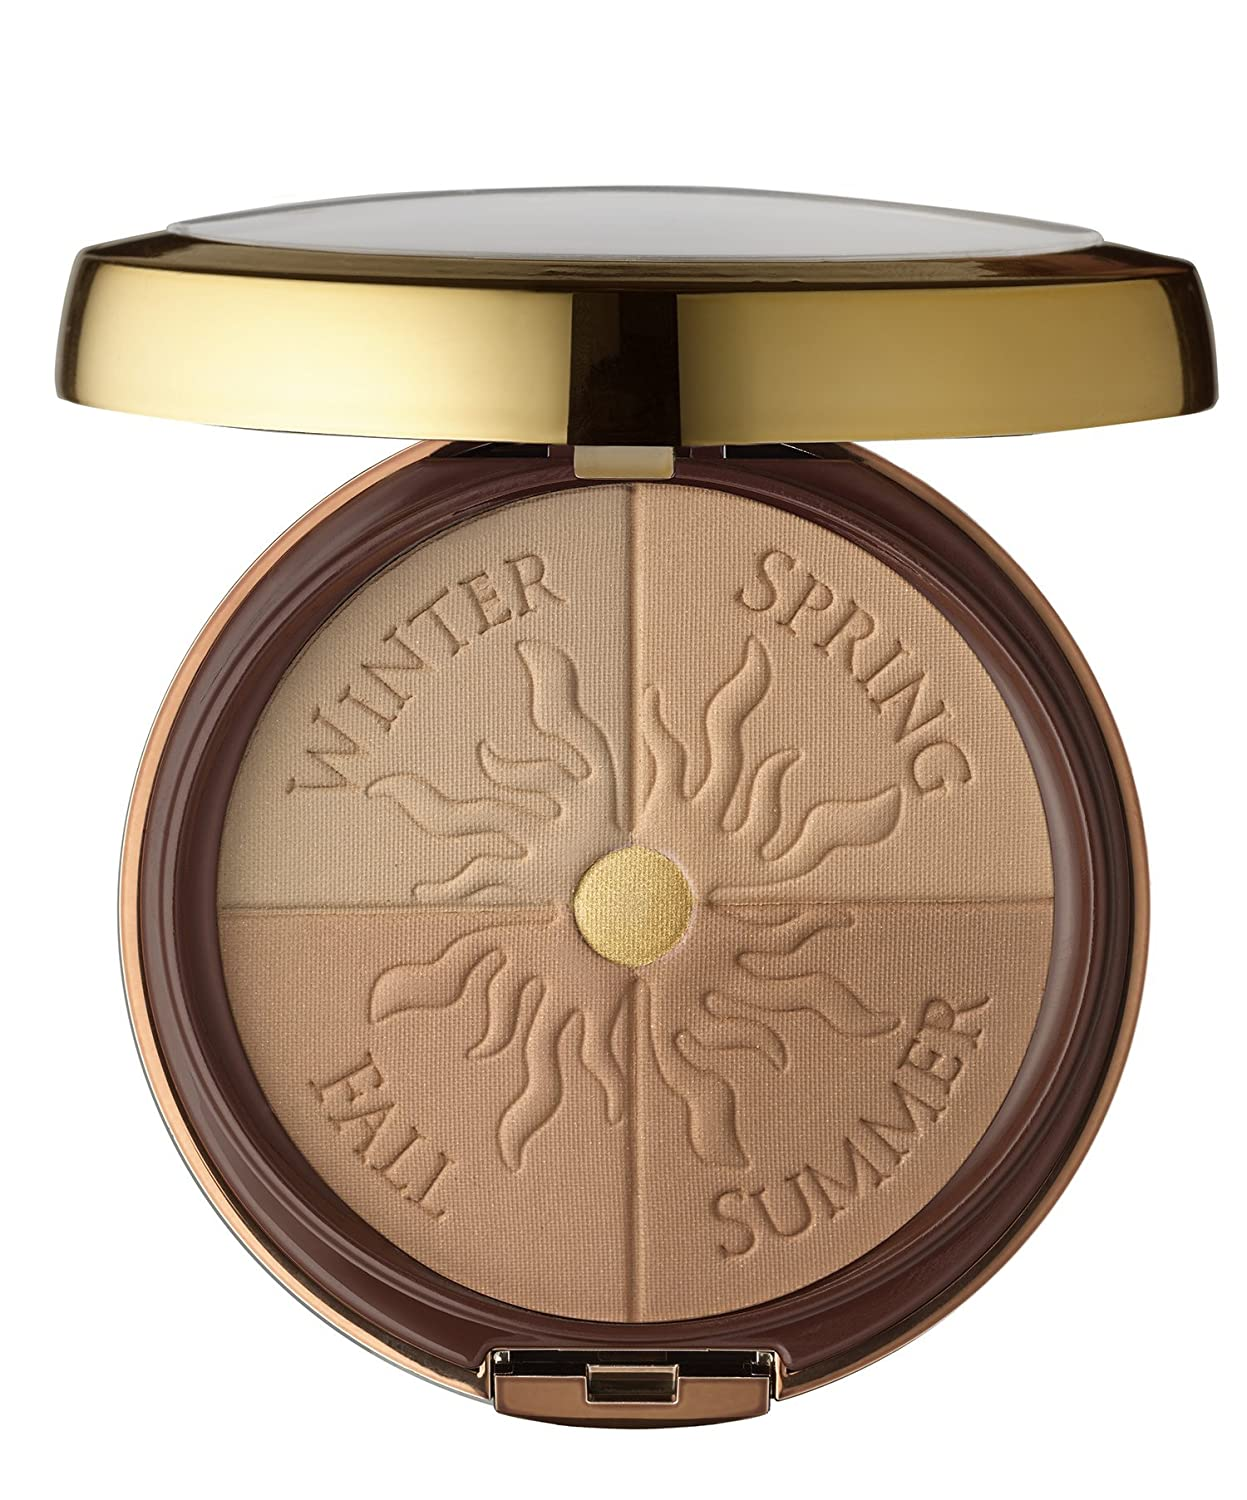 Physicians Formula Bronze Booster Glow-Boosting Season-to-Season Bronzer, Light to Medium, 0.27 Ounce 7545E